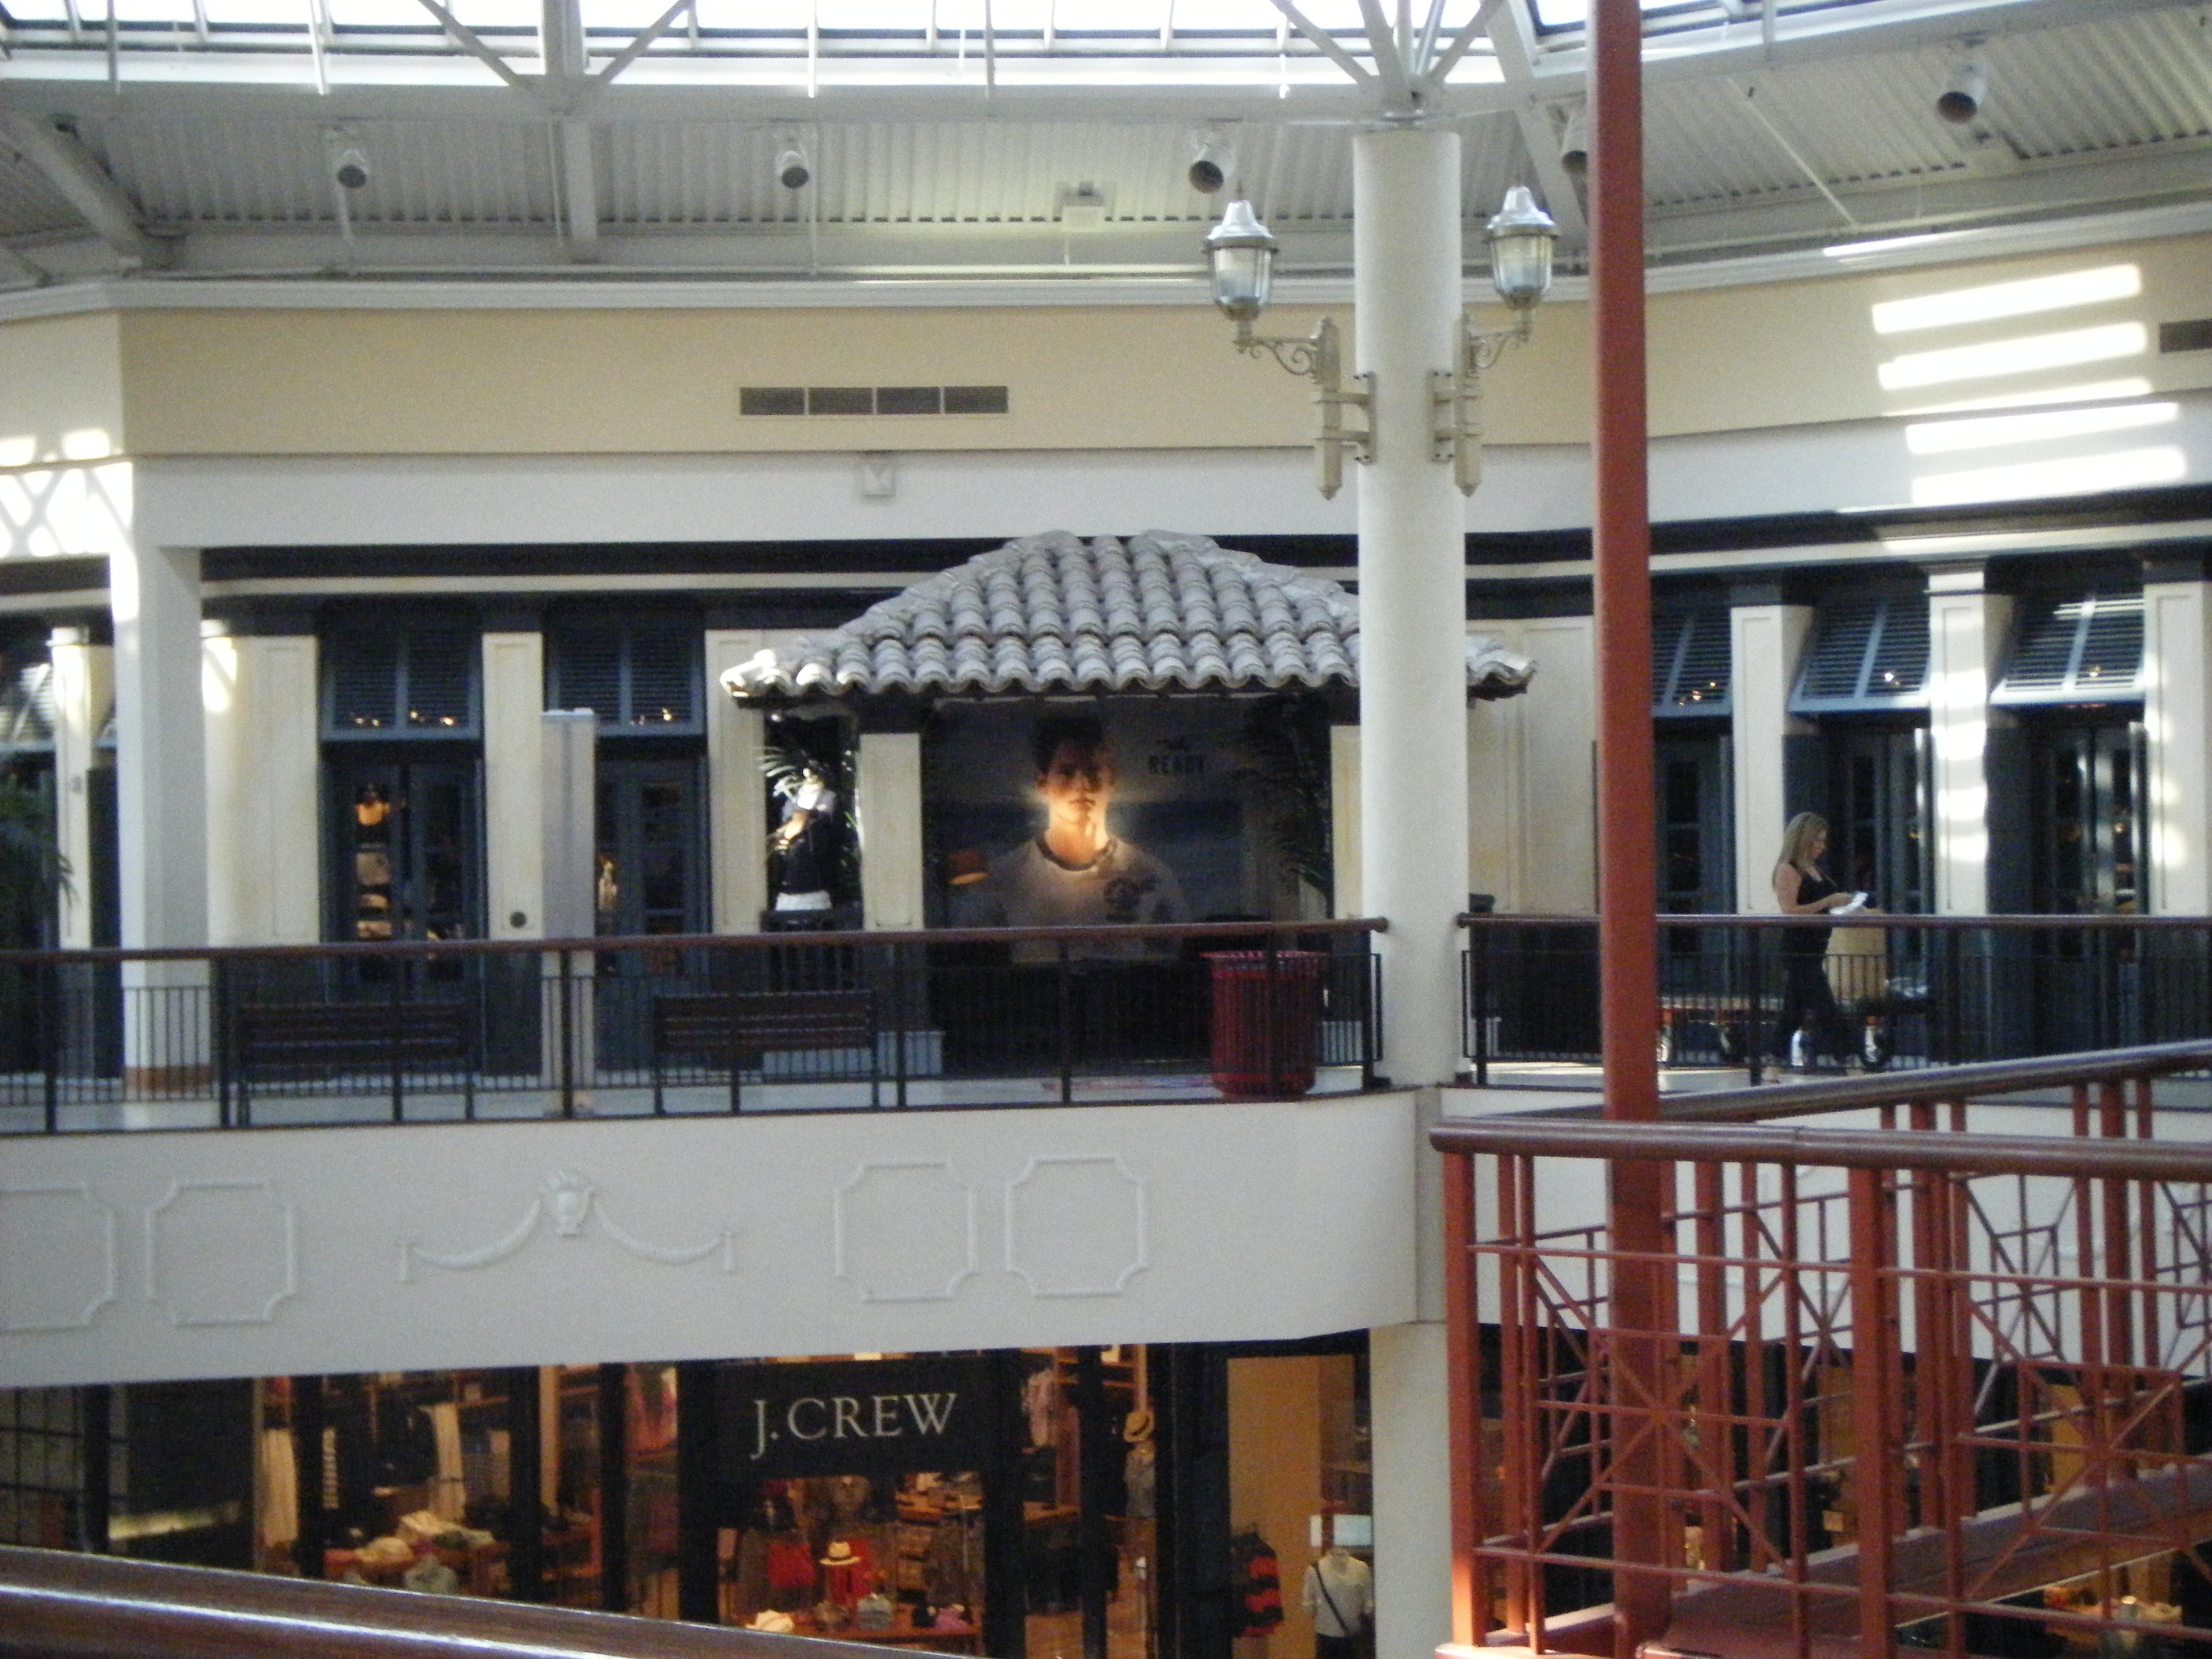 File:Hollister ... Mall Pennsylvania